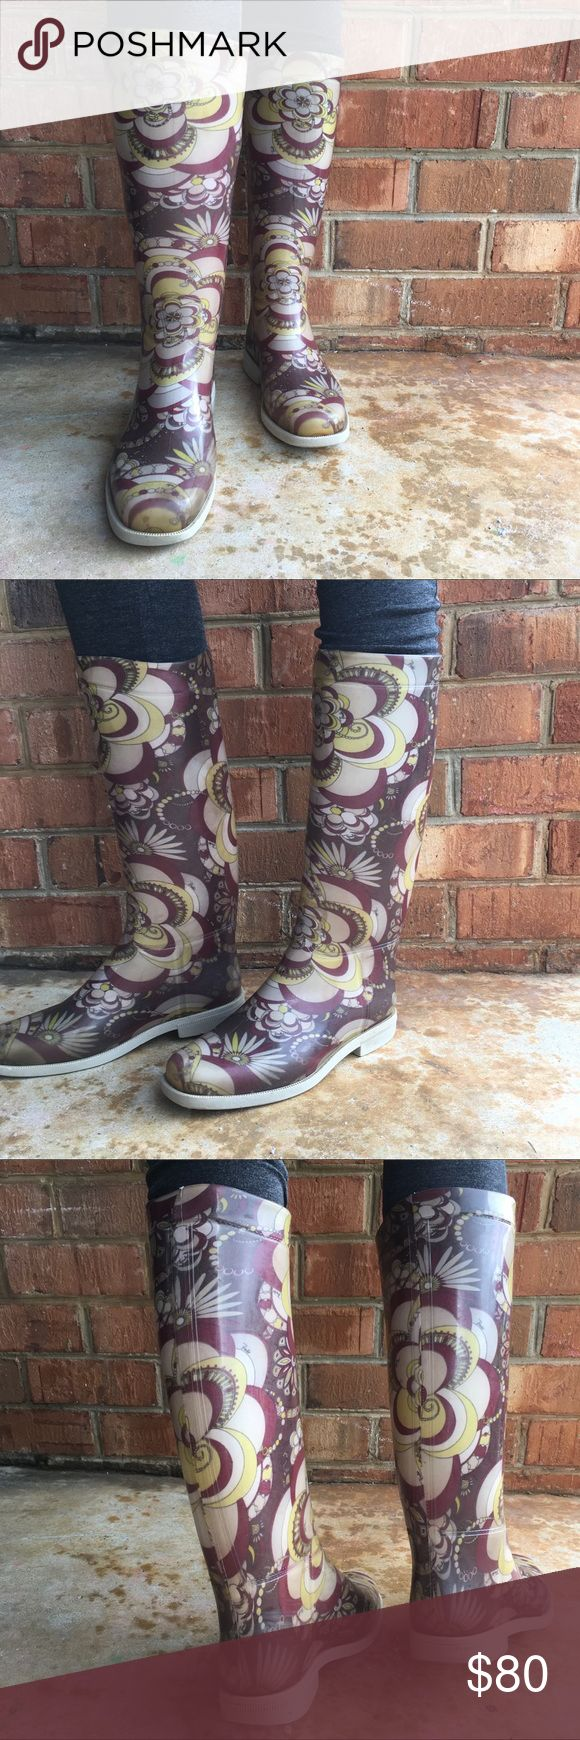 Emilio Pucci ☔️ boots designer rain boots made in Italy. Super comfy and slide on easily. Good vintage condition. Some scuffing and discoloration, but it is hard to notice because of the busy pattern. One inside sole liner is scrunching as pictured, but I don't notice it while wearing. Size 38. 15 inches tall. 14 inch calf opening. Emilio Pucci Shoes Winter & Rain Boots